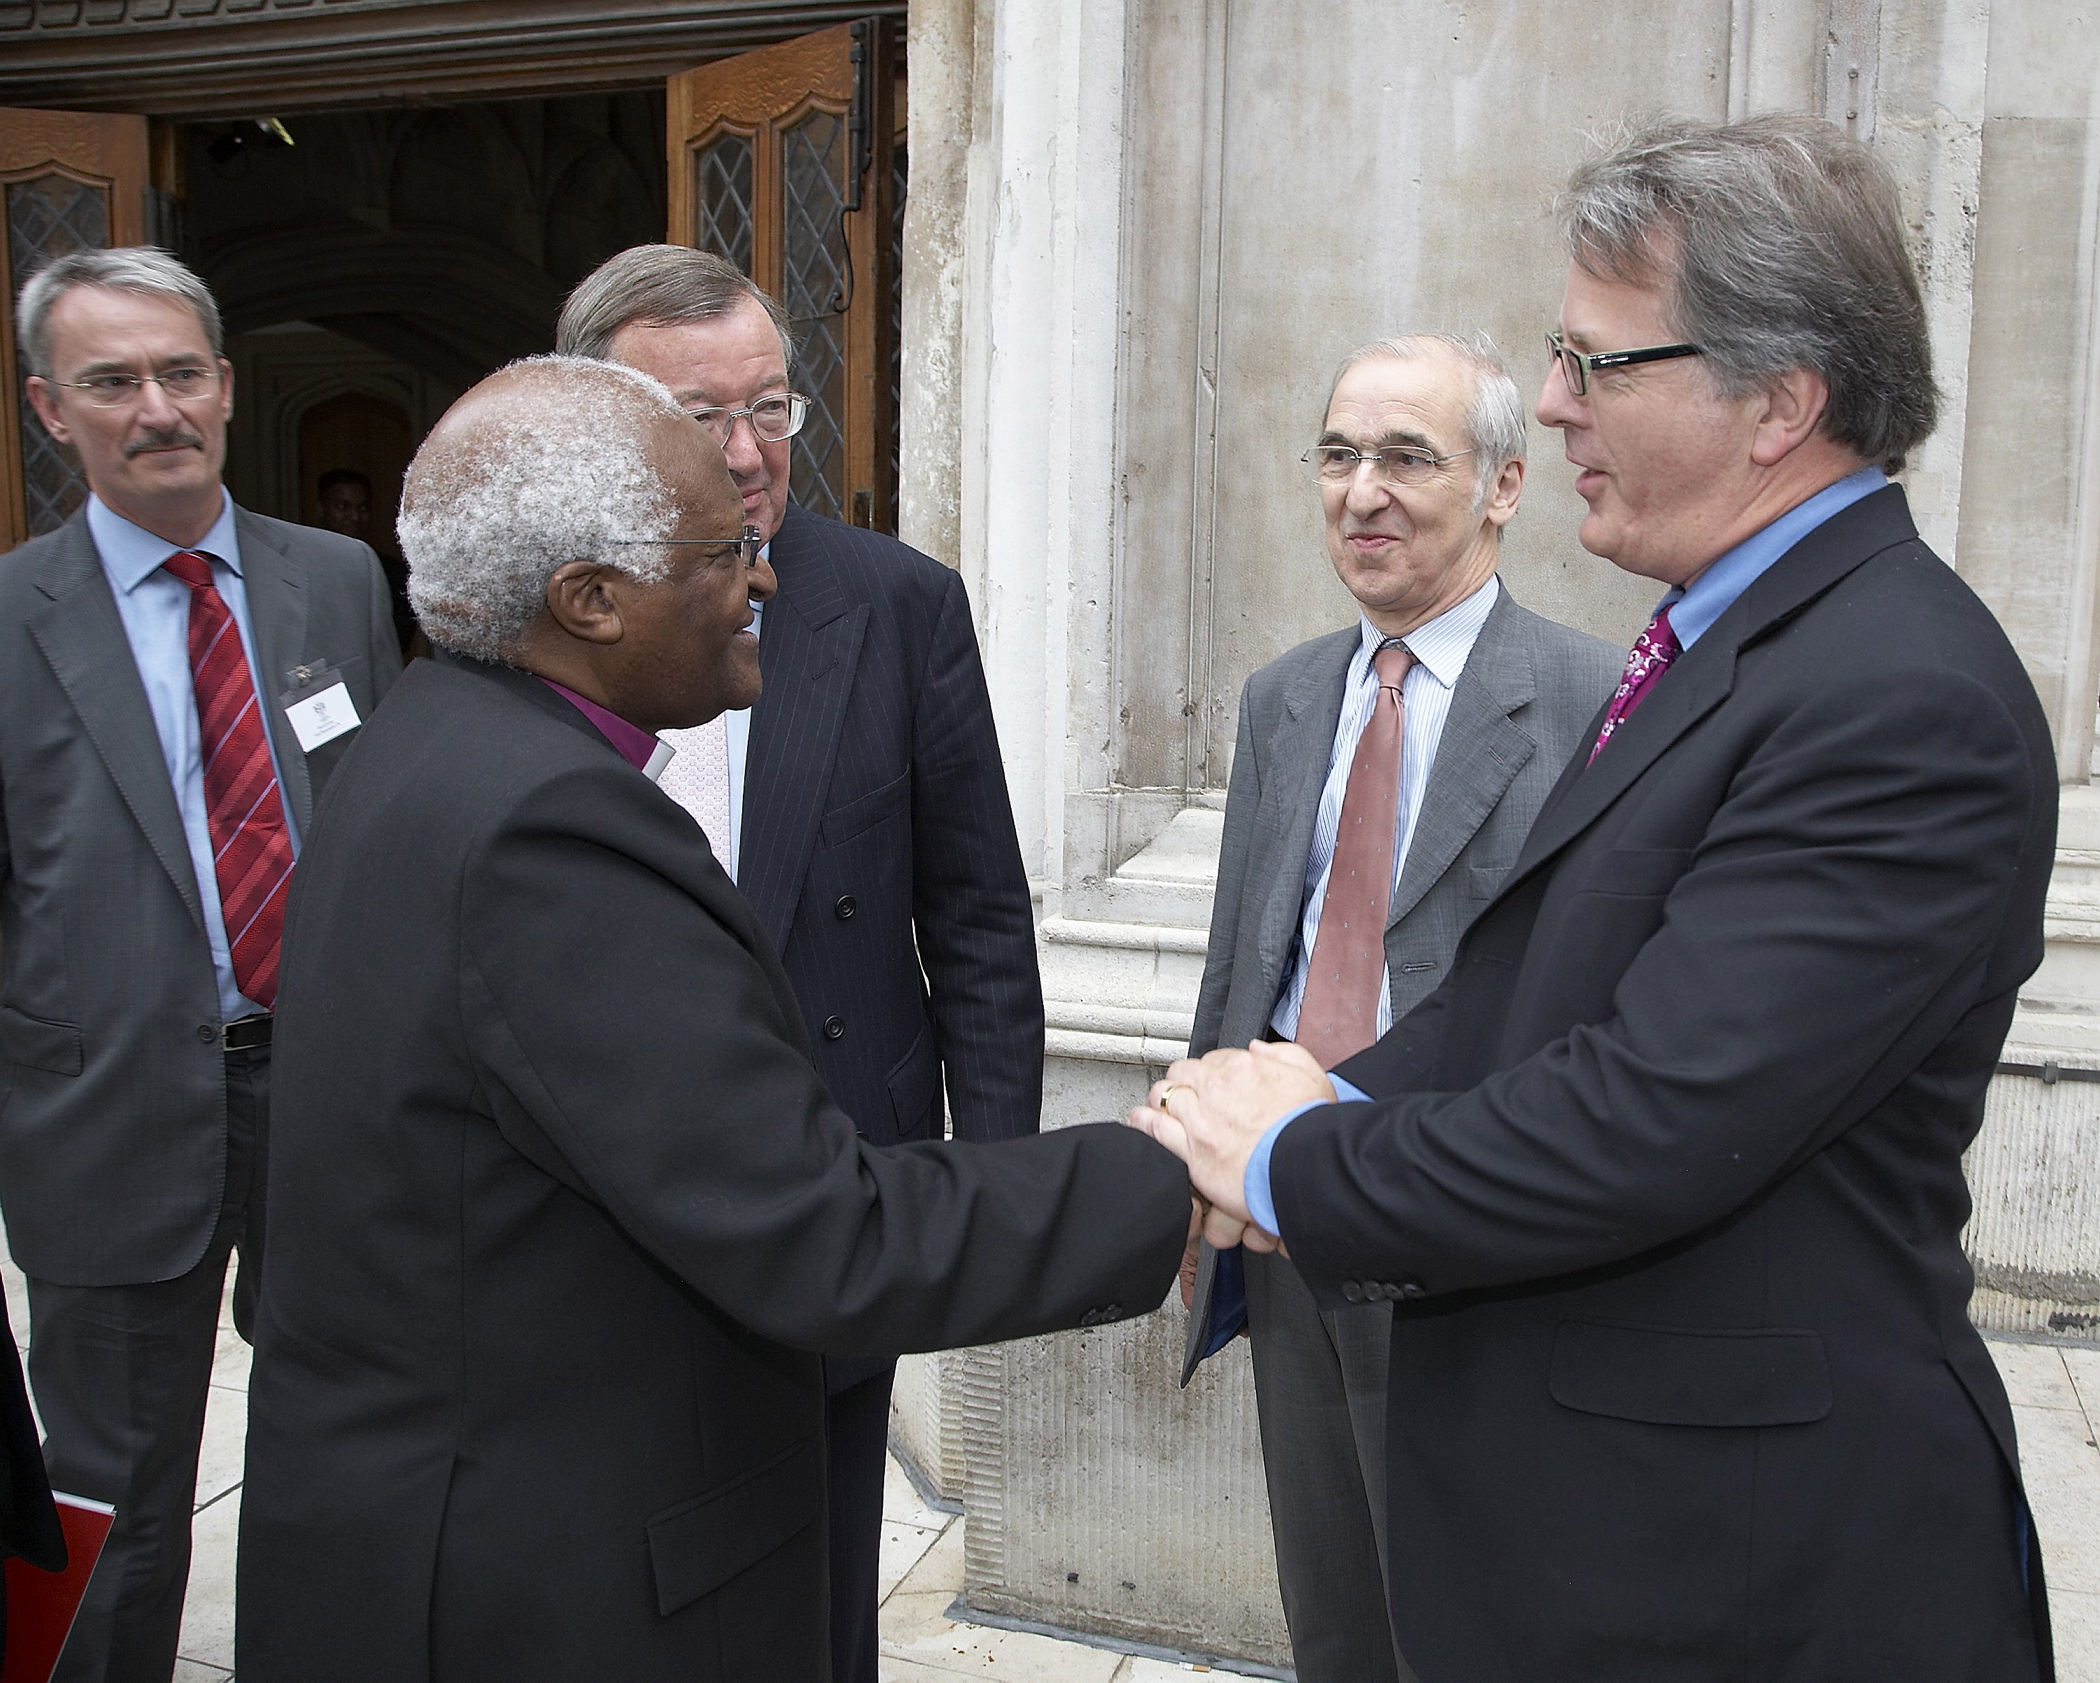 archbishop-tutu-and-david-emerson